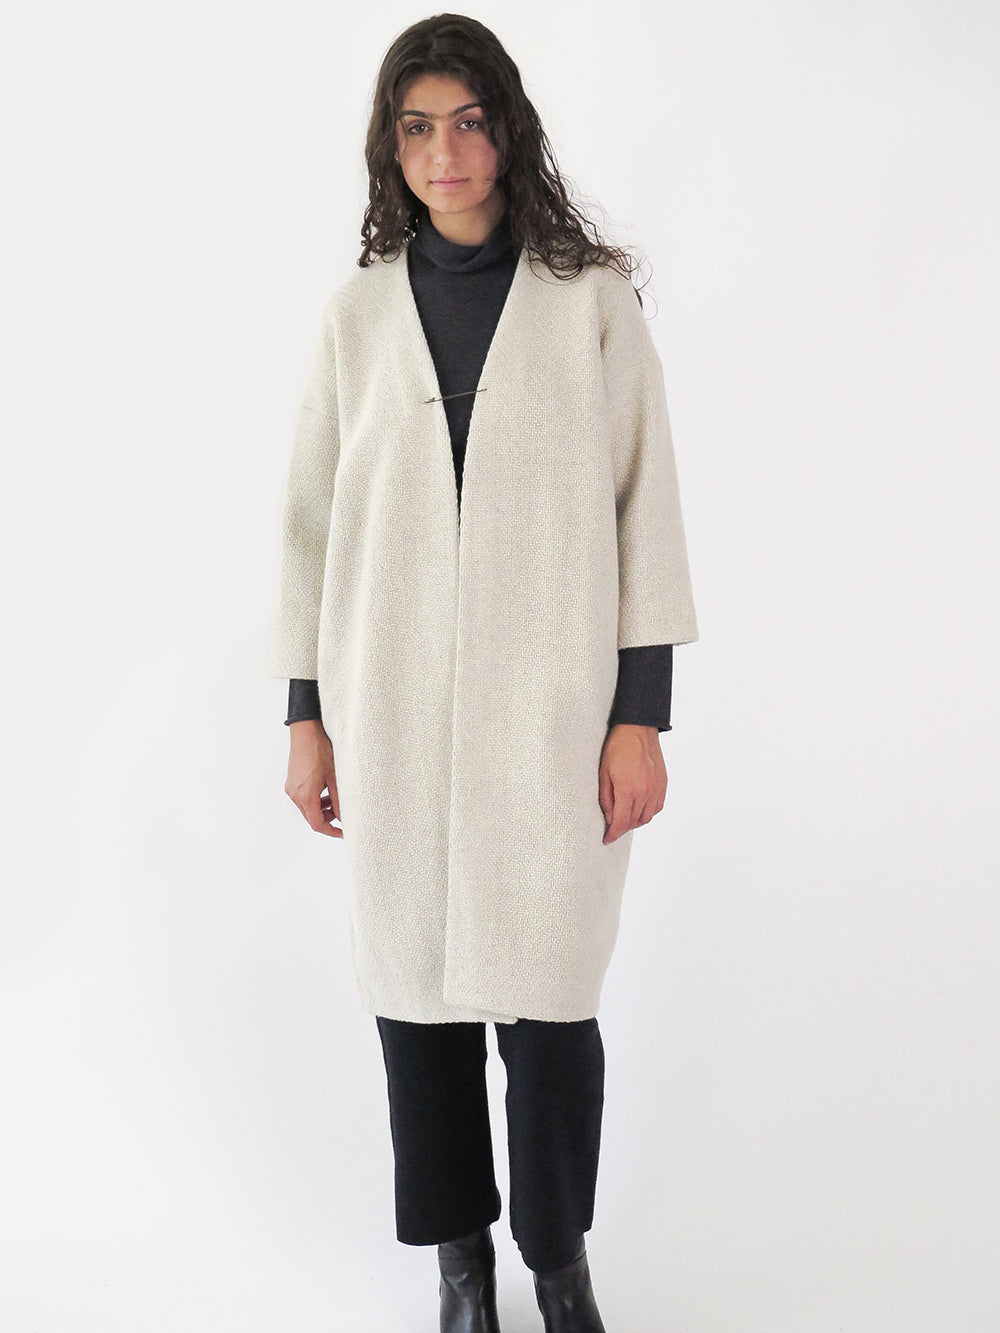 evam eva tweed robe coat in ivory